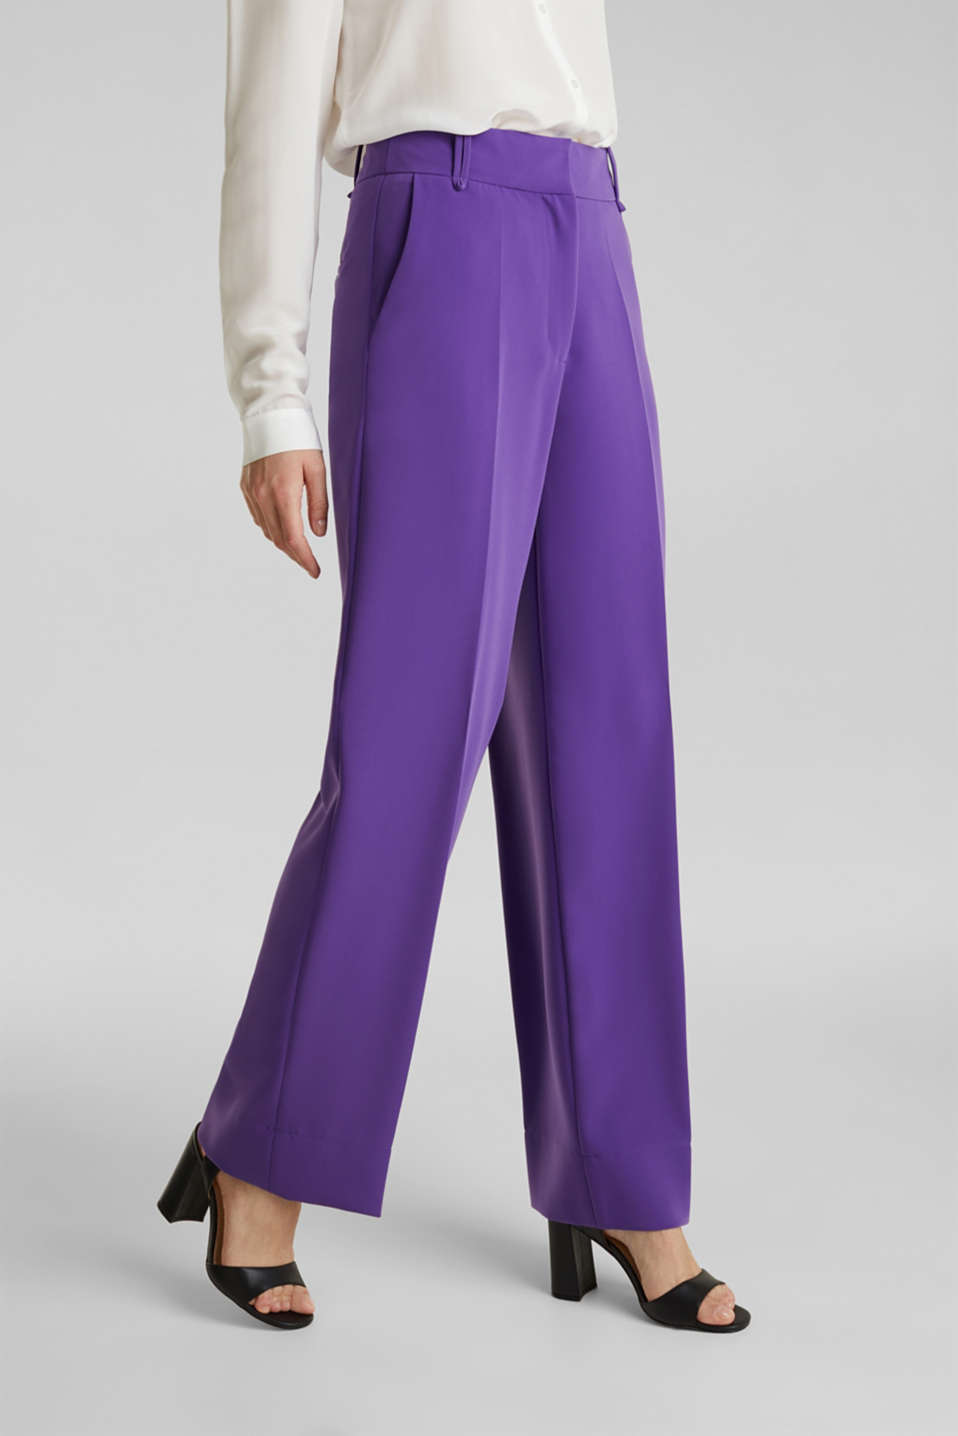 TECHNO TWILL mix + match wide stretch trousers, PURPLE, detail image number 0